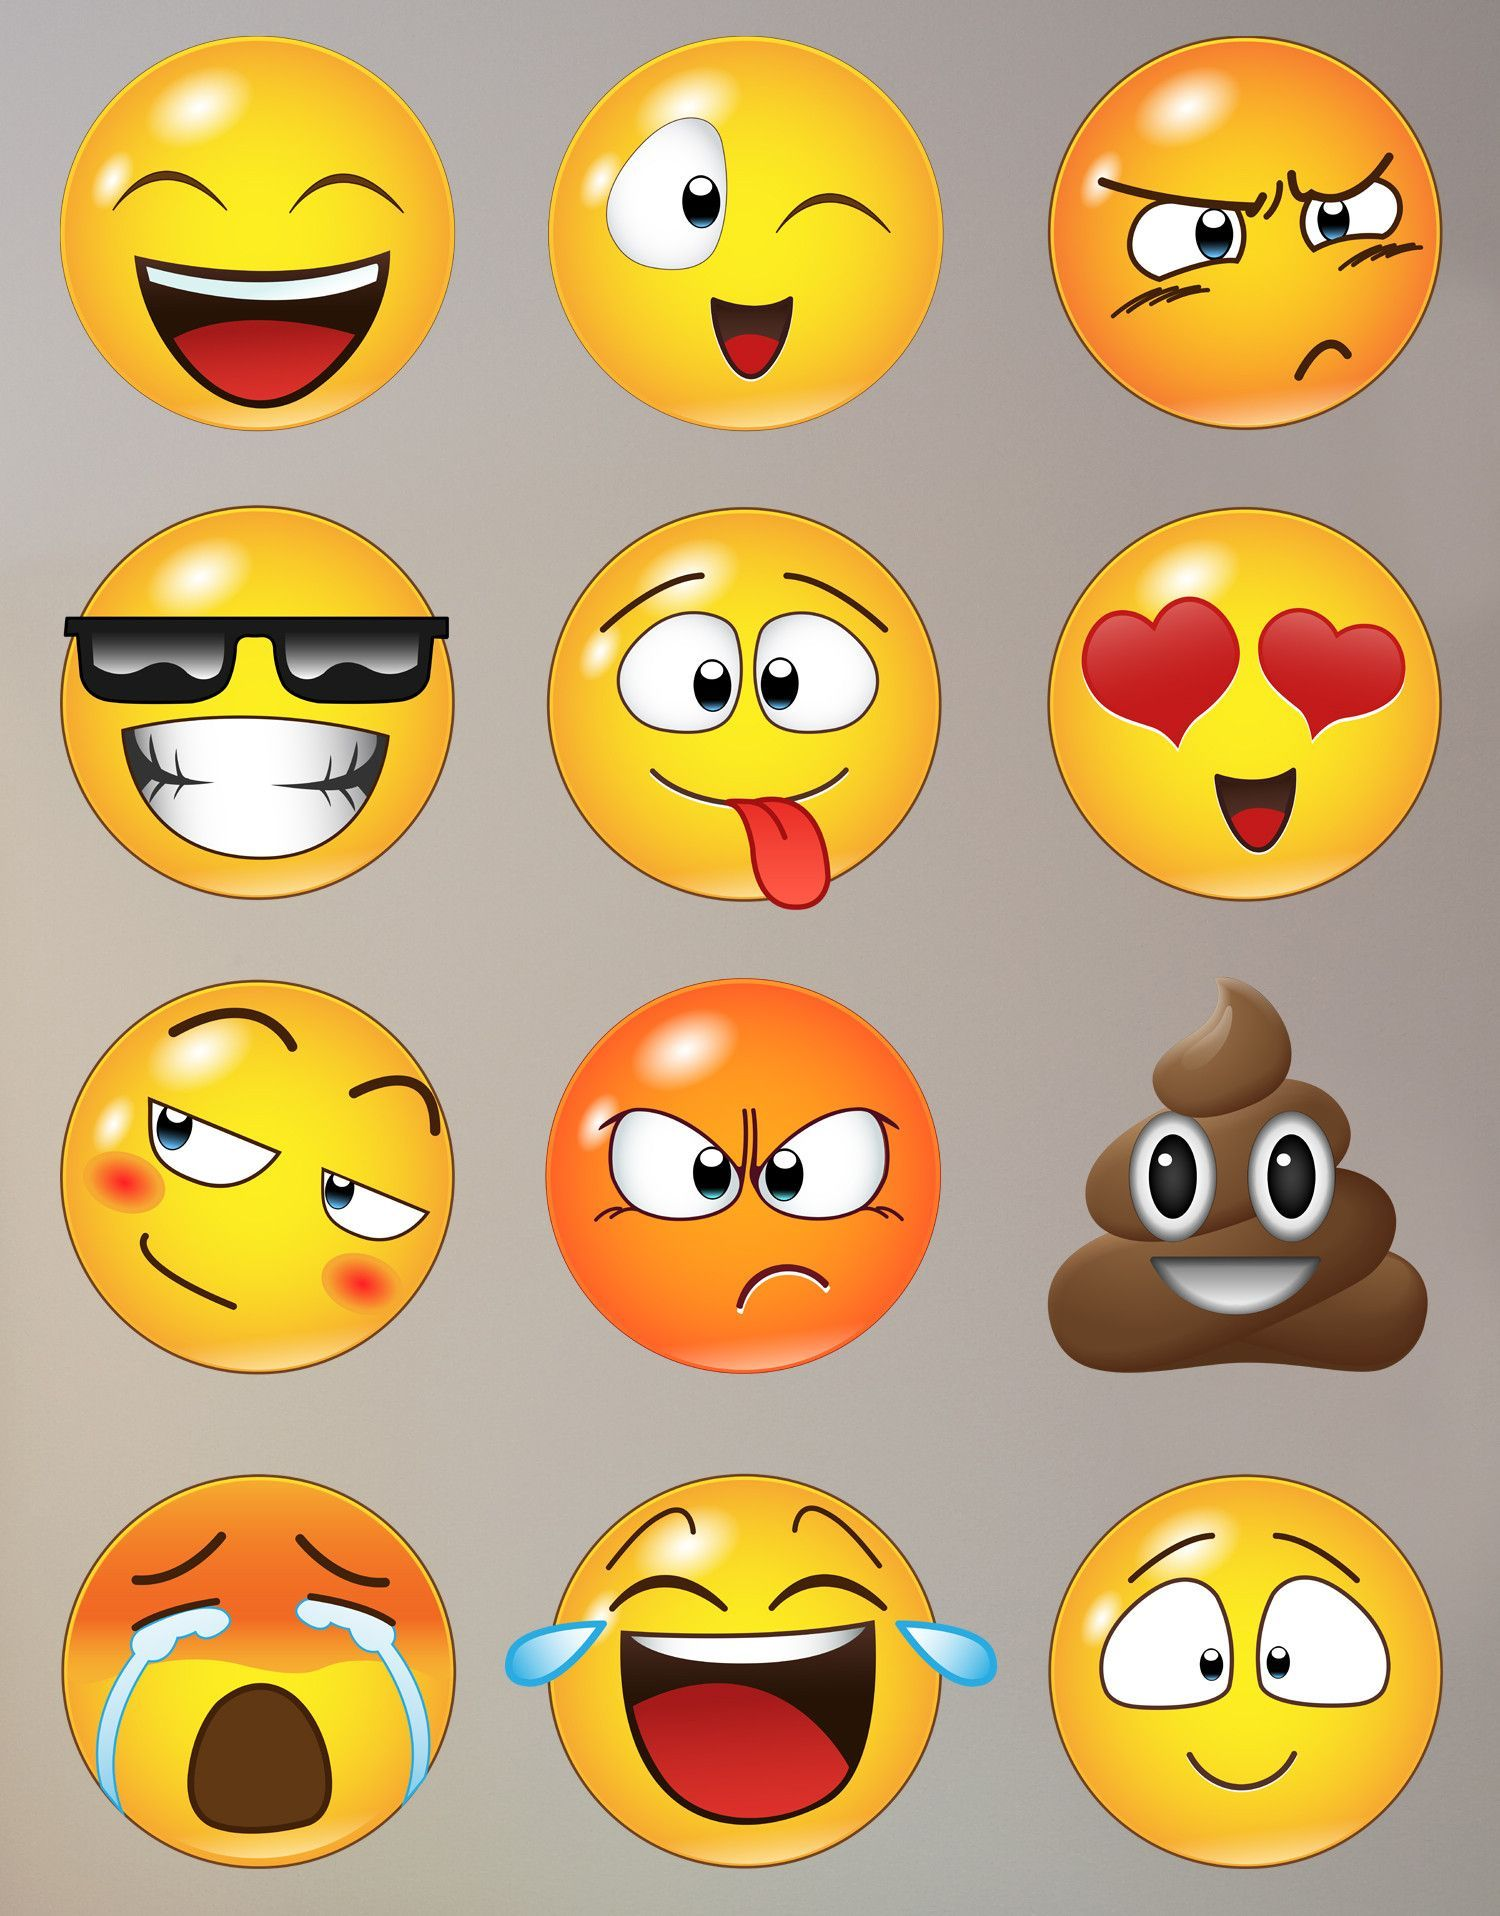 77baff5484 Decal #6052 - Emoji wall decals include all 12 Emoji faces as shown. - Emoji  faces can be positioned individually. - Simply peel and stick.